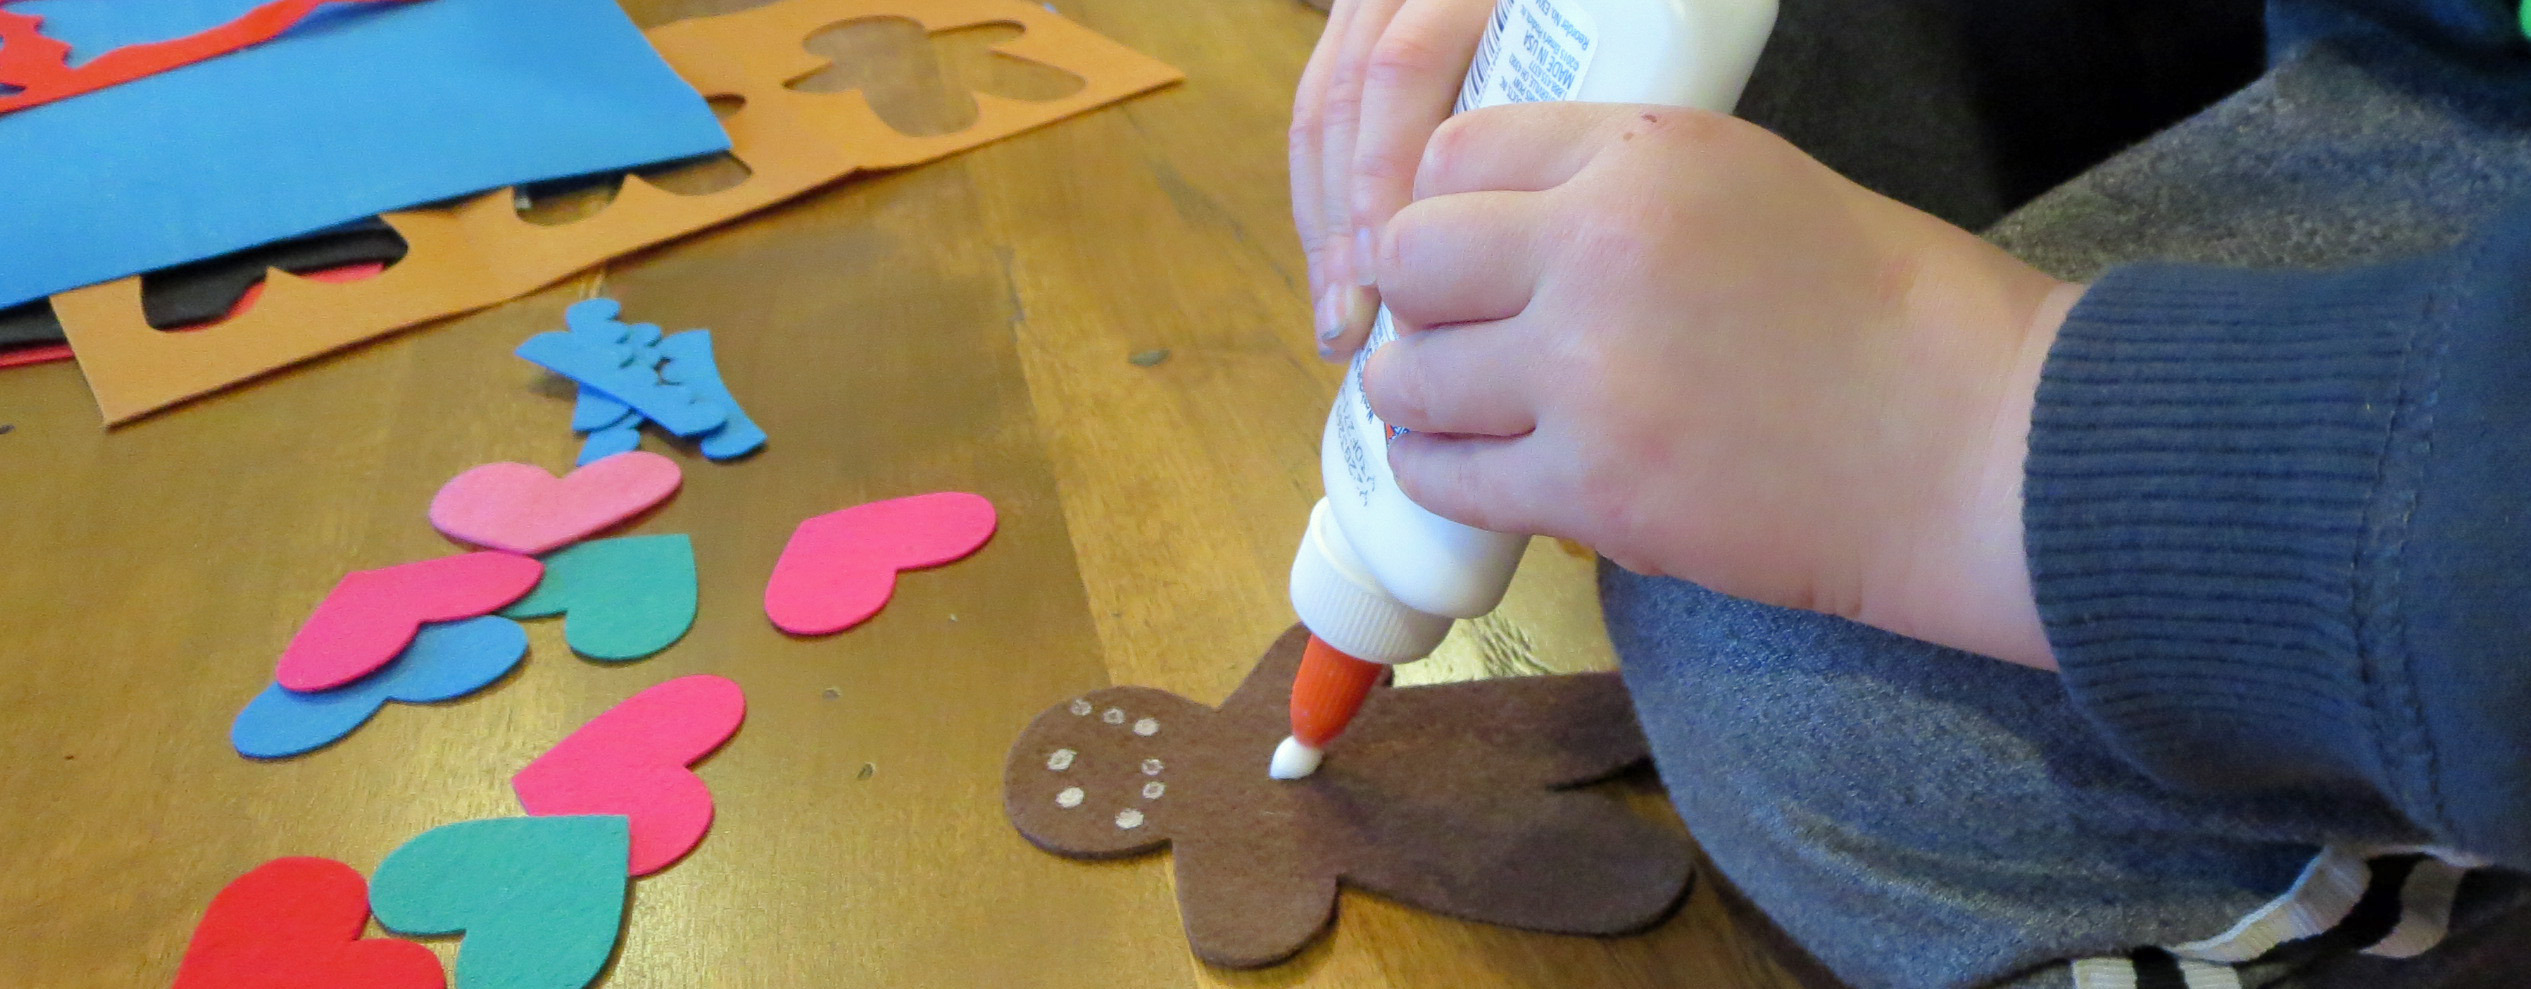 child placing glue dot on brown gingerbread man shape with a pile of felt hearts in pink, red and blues